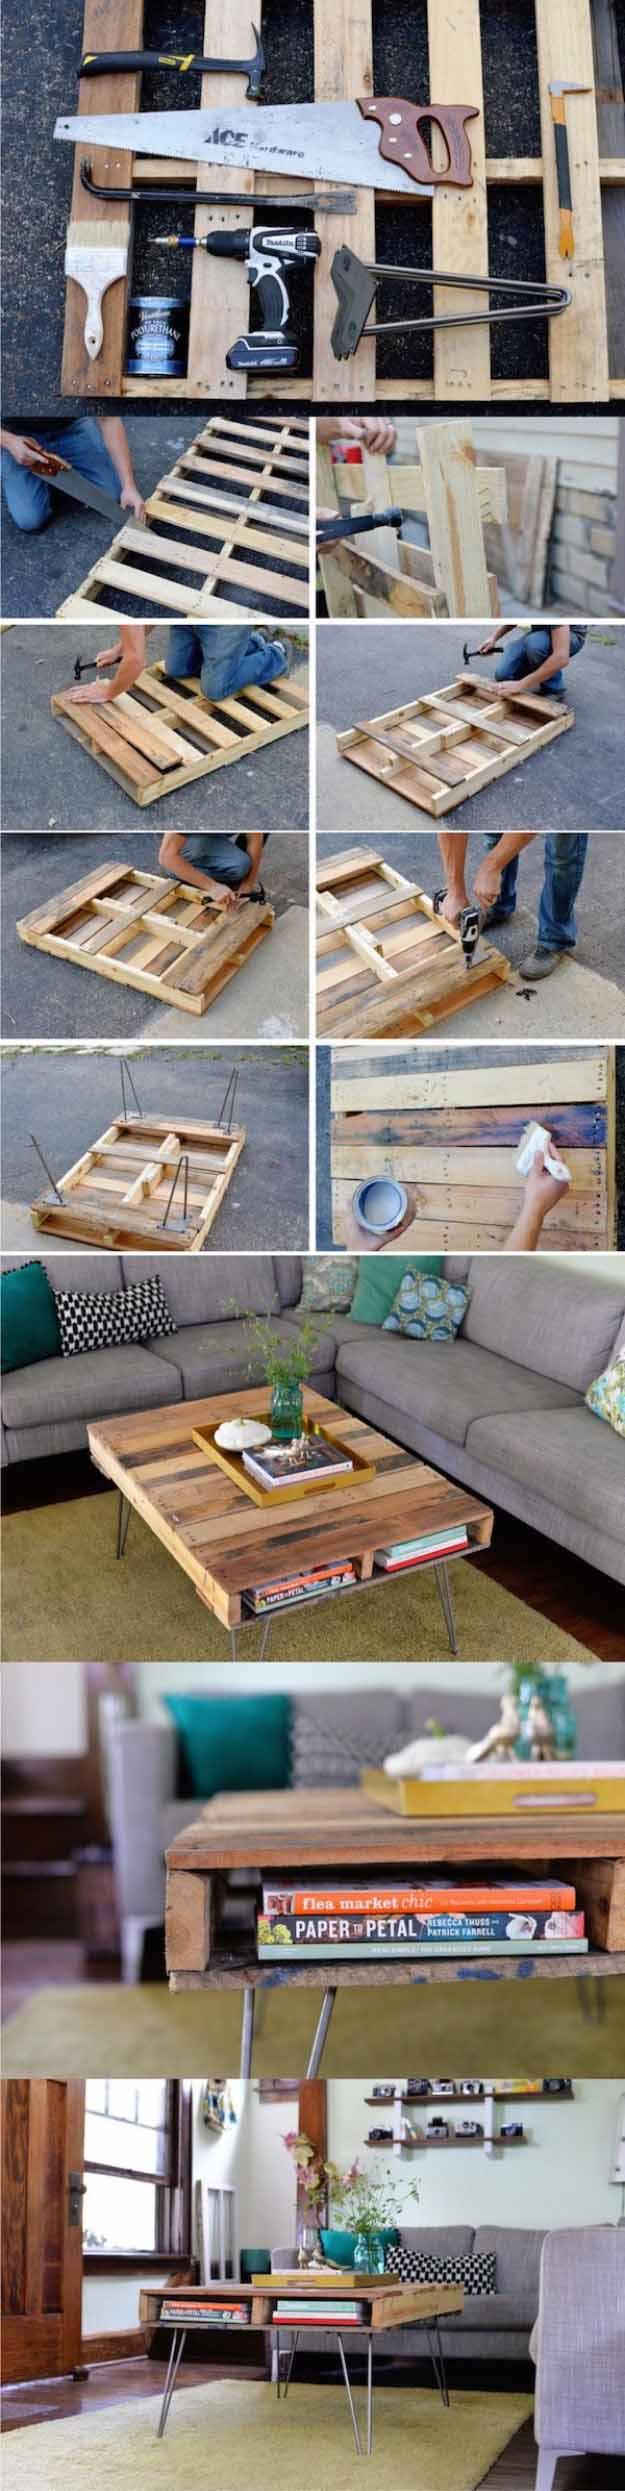 Easy DIY Home Decor Projects| DIY Pallet Furniture Tutorial | Cheap Coffee Table Ideas | DIY Projects and Crafts by DIY JOY #coffeetables #diyfurniture